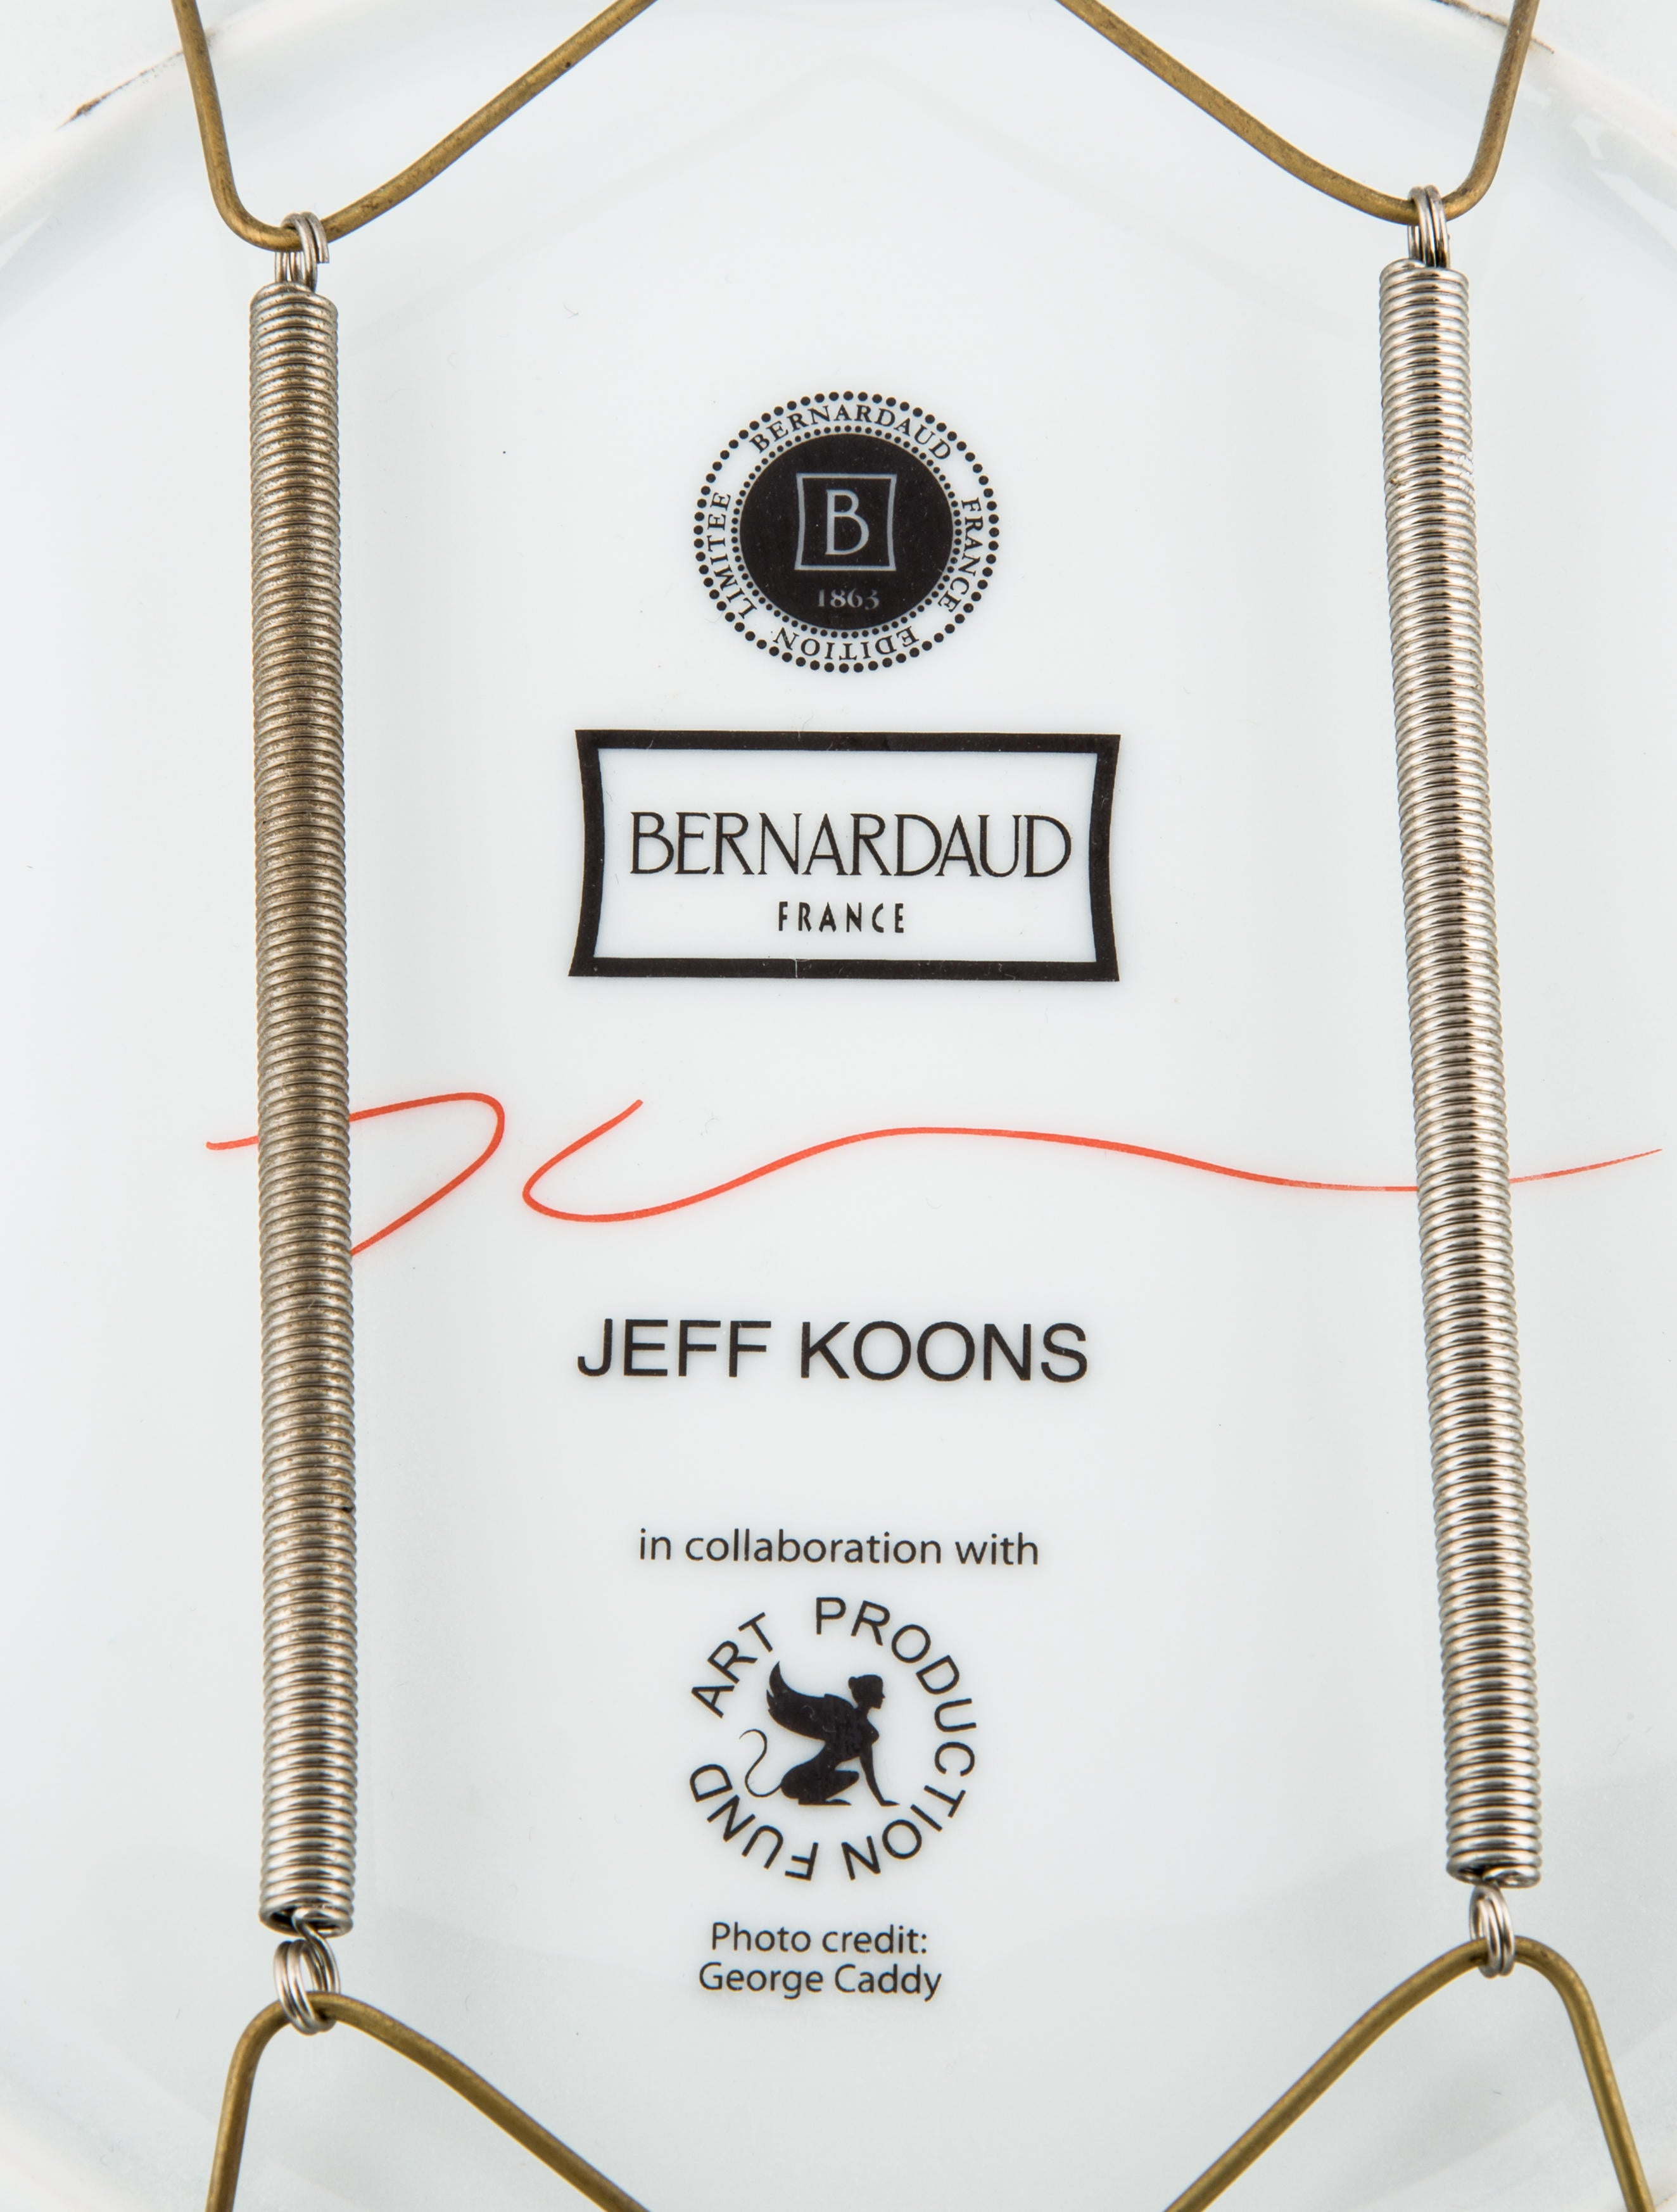 Bernardaud Limited Edition Jeff Koons Wow Plate Decor And Accessories Bdd20233 The Realreal